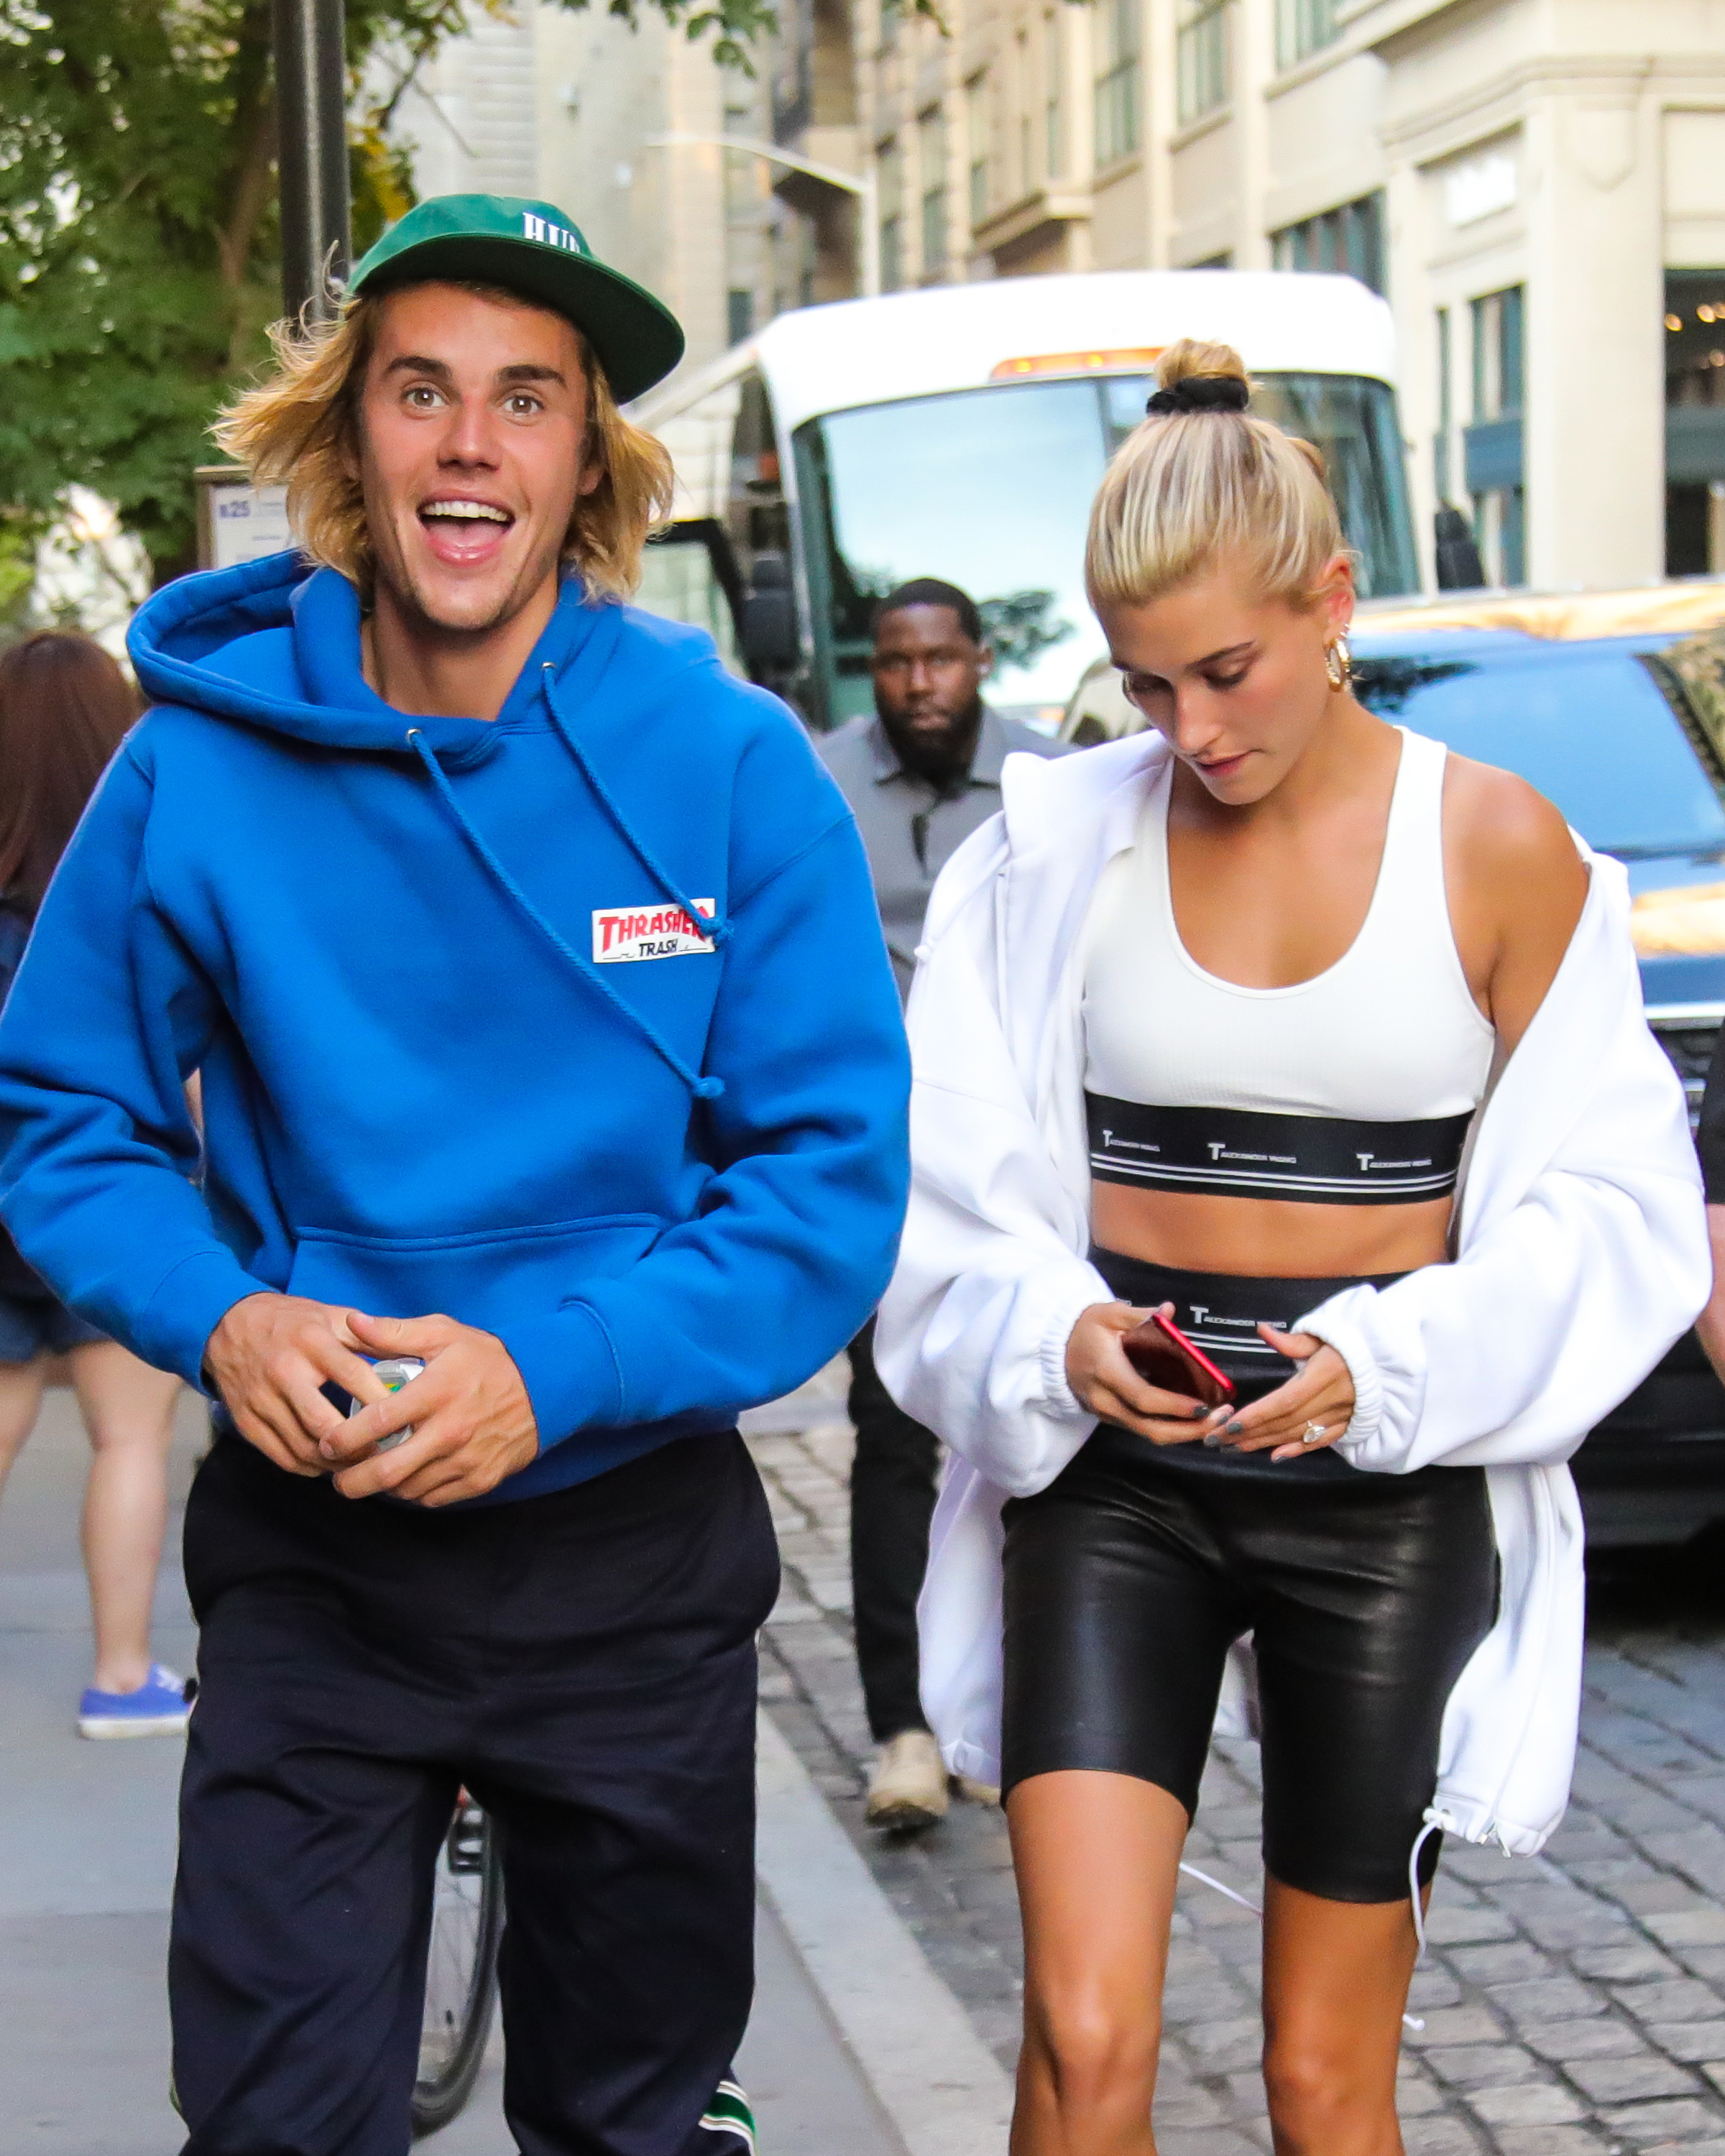 b3d43998a29f Hailey Baldwin and Justin Bieber Hold Hands   She Flashes Her Engagement  Ring In NYC